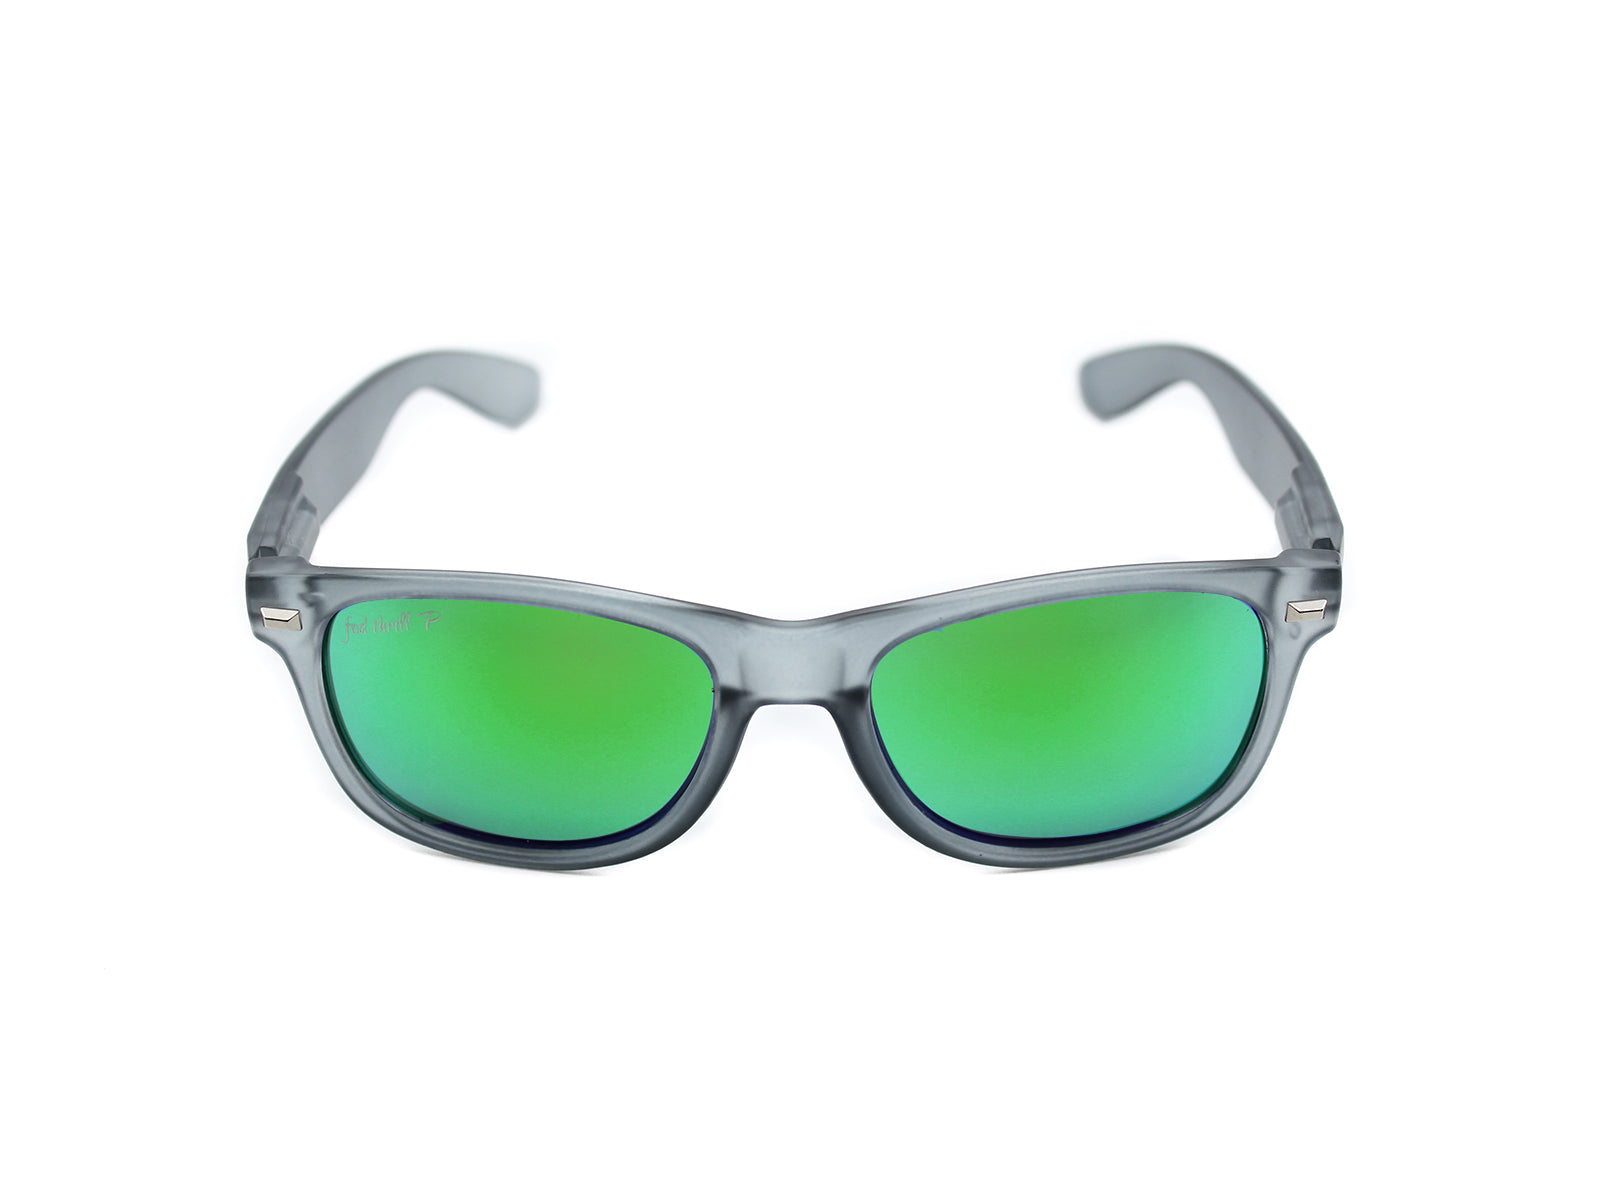 Fultons - Mosses: Frosted Gray / Mirrored Green Polarized